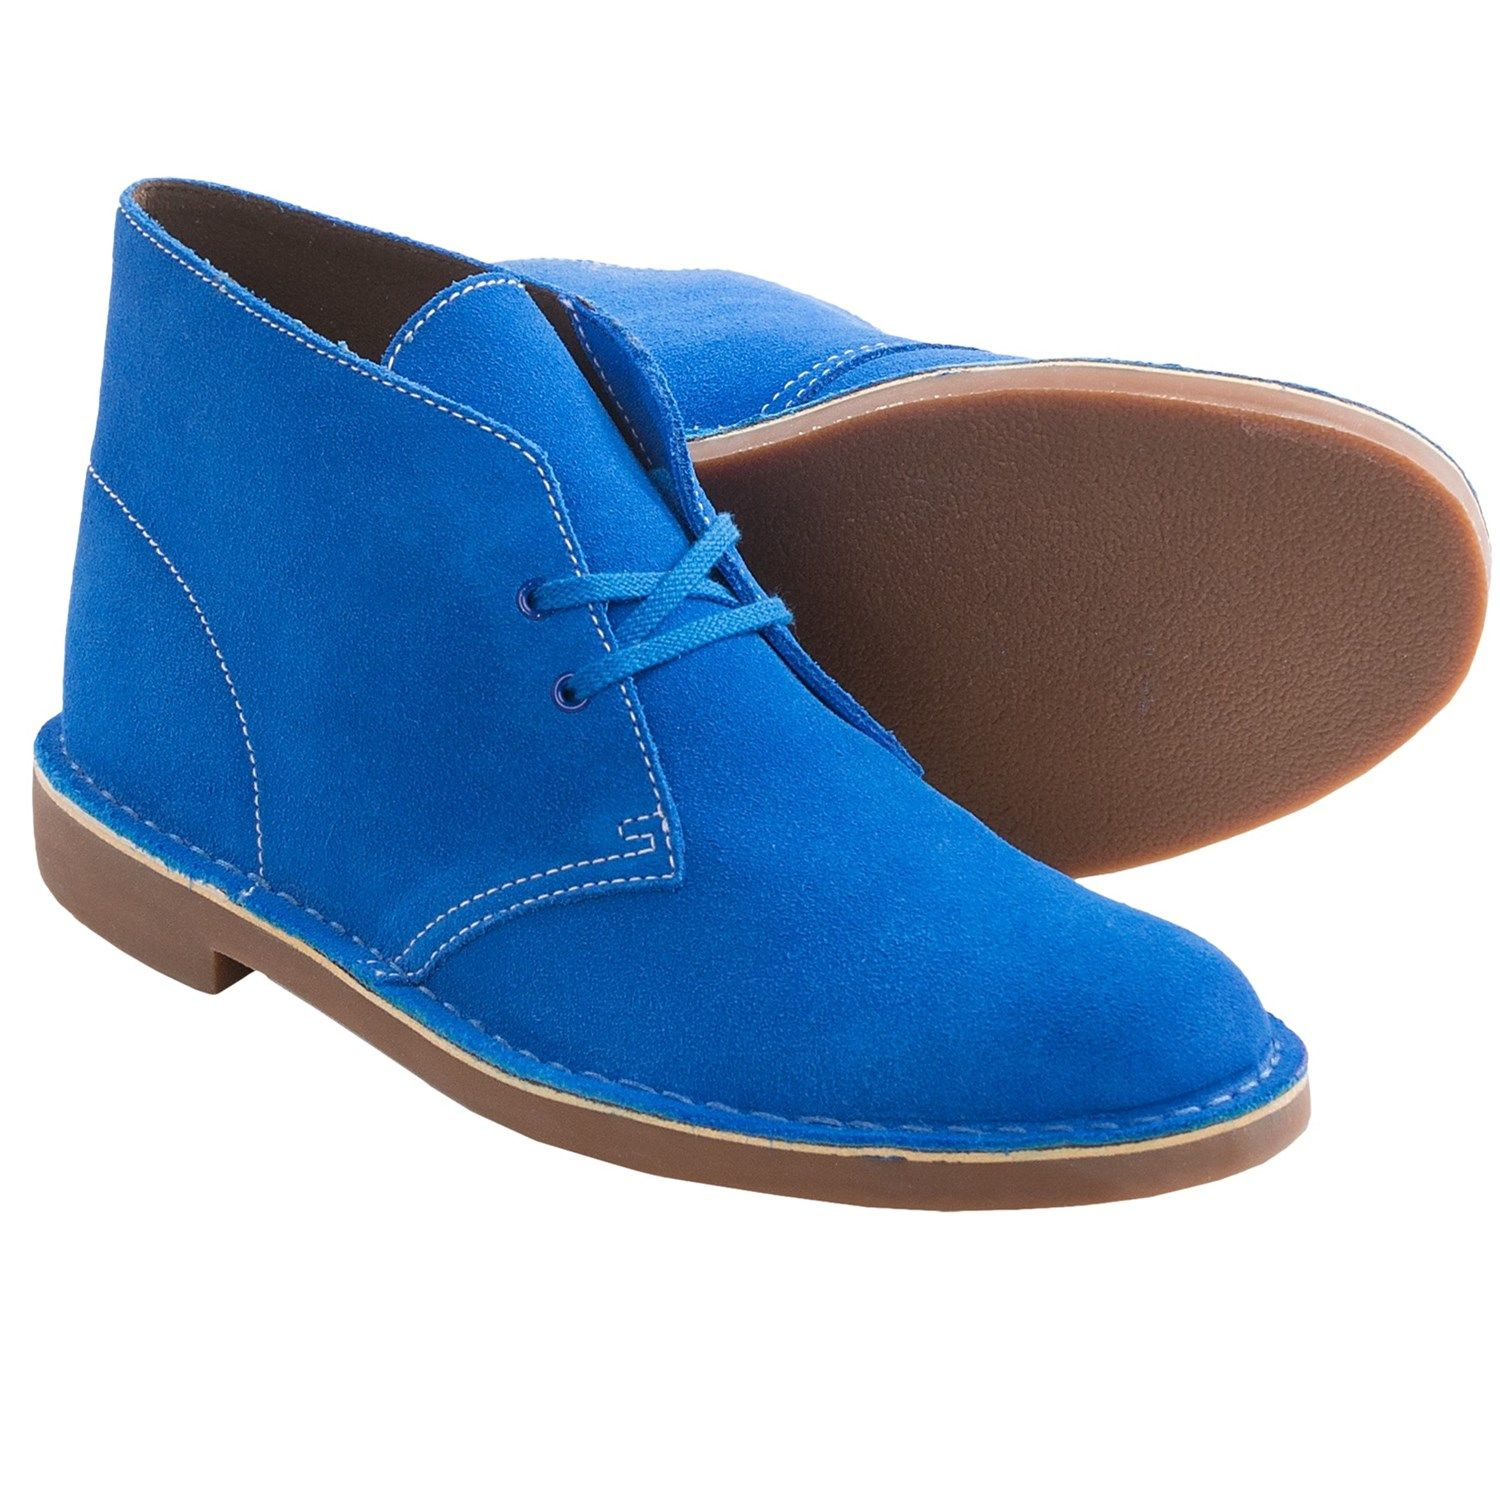 clarks mens blue suede shoes